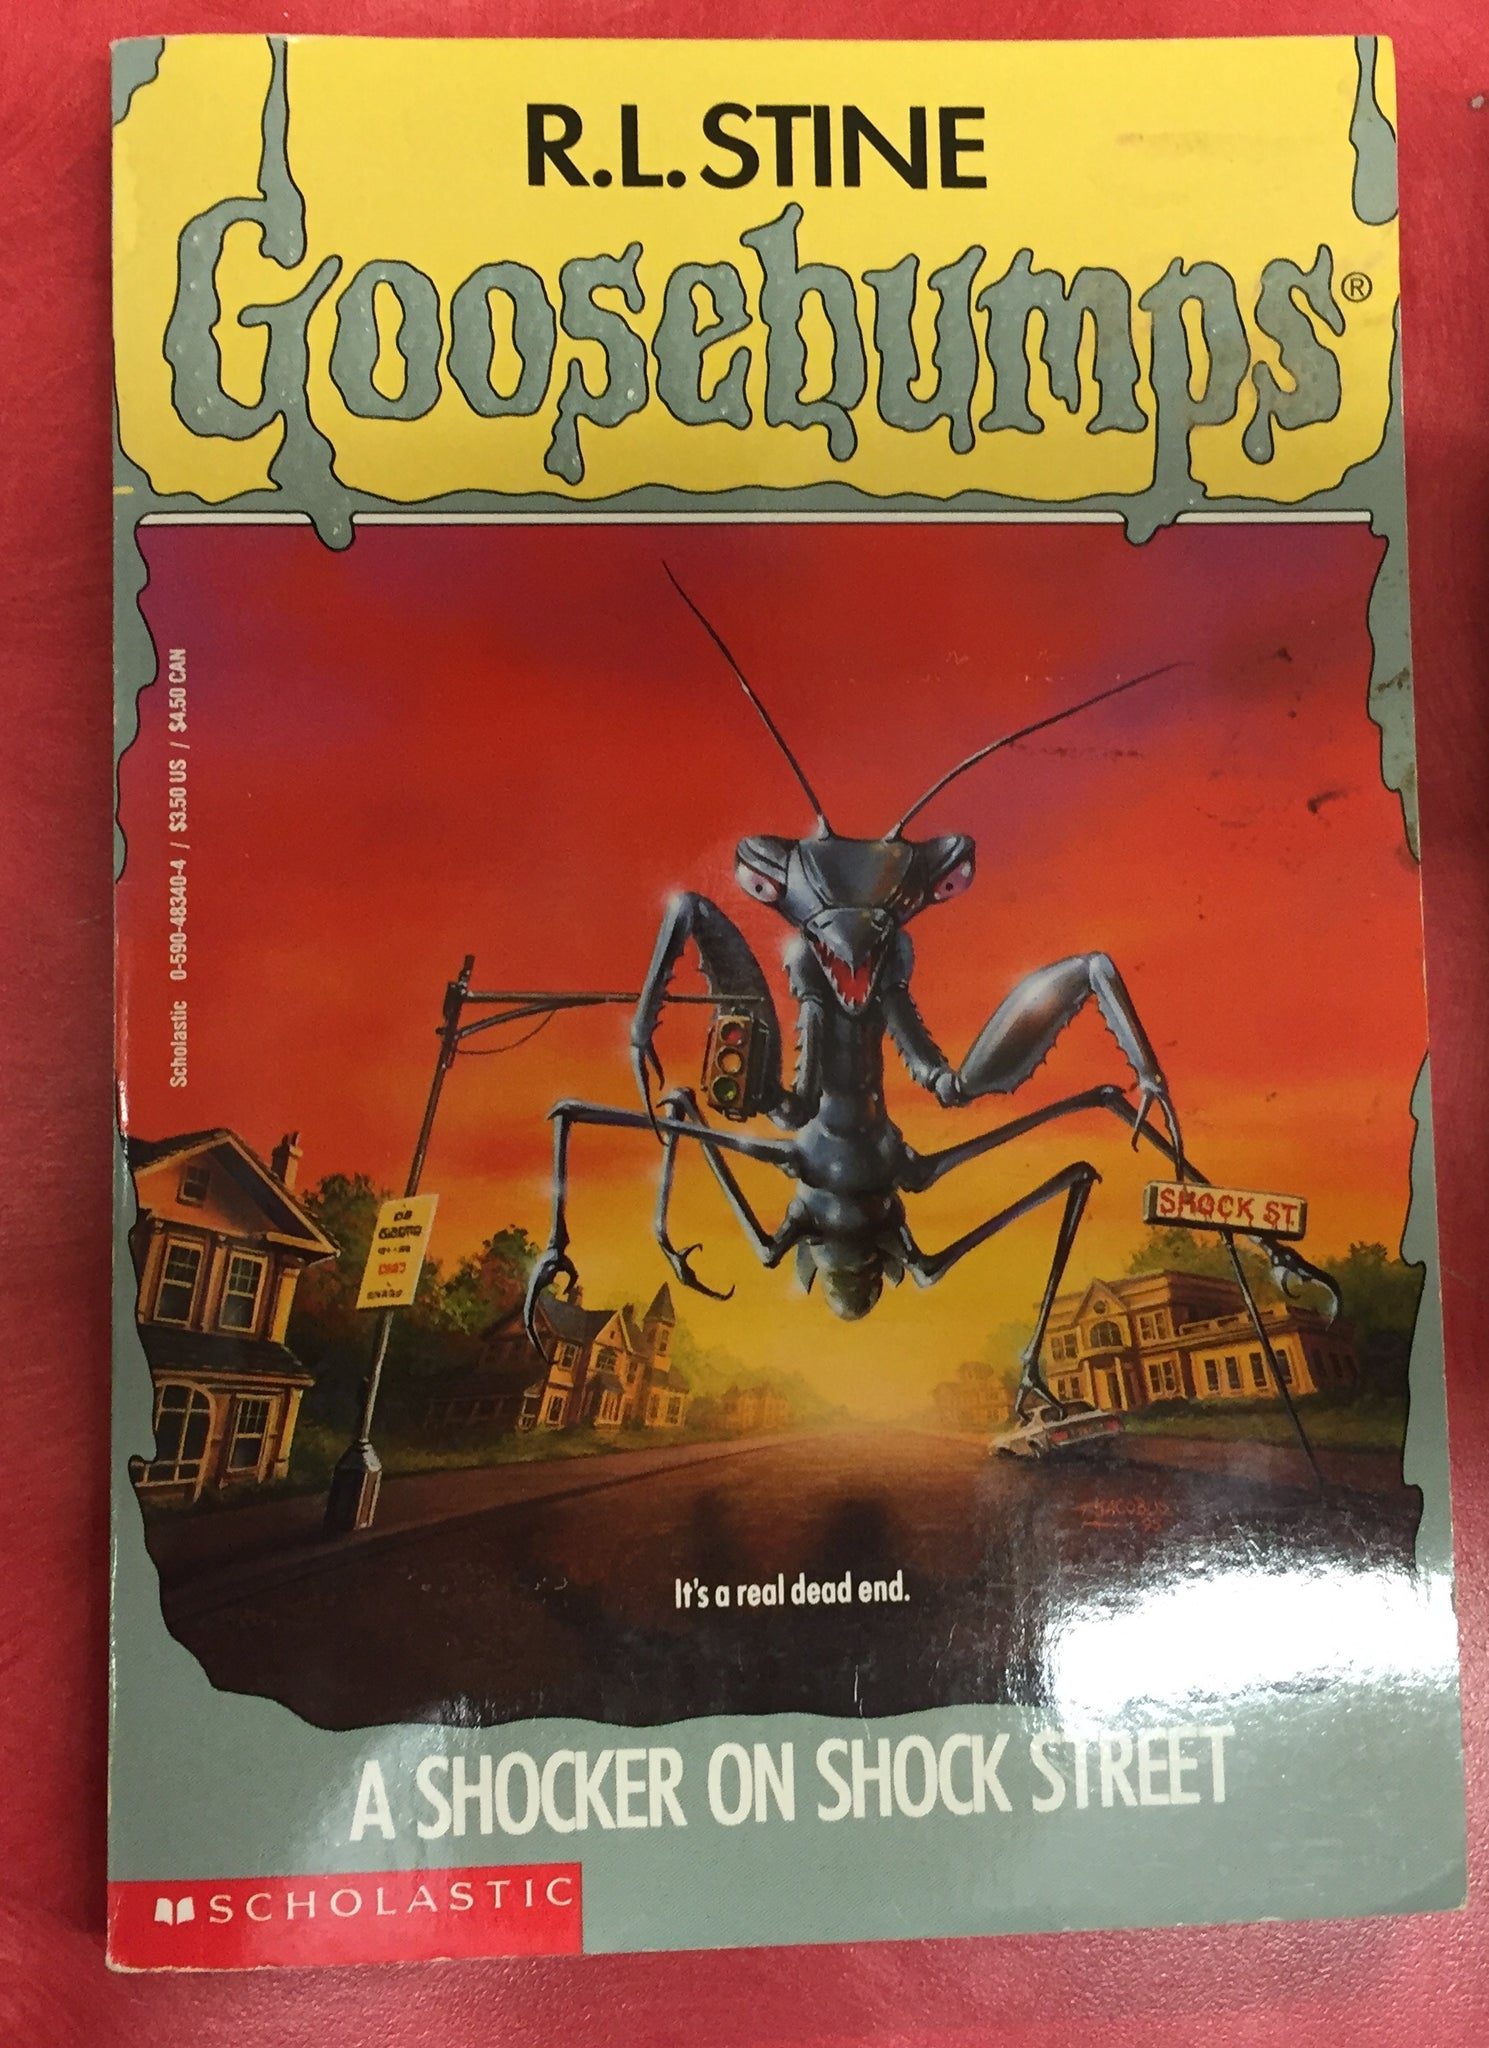 Goosebumps R. L. Stine A shocker on shock street Issue 35